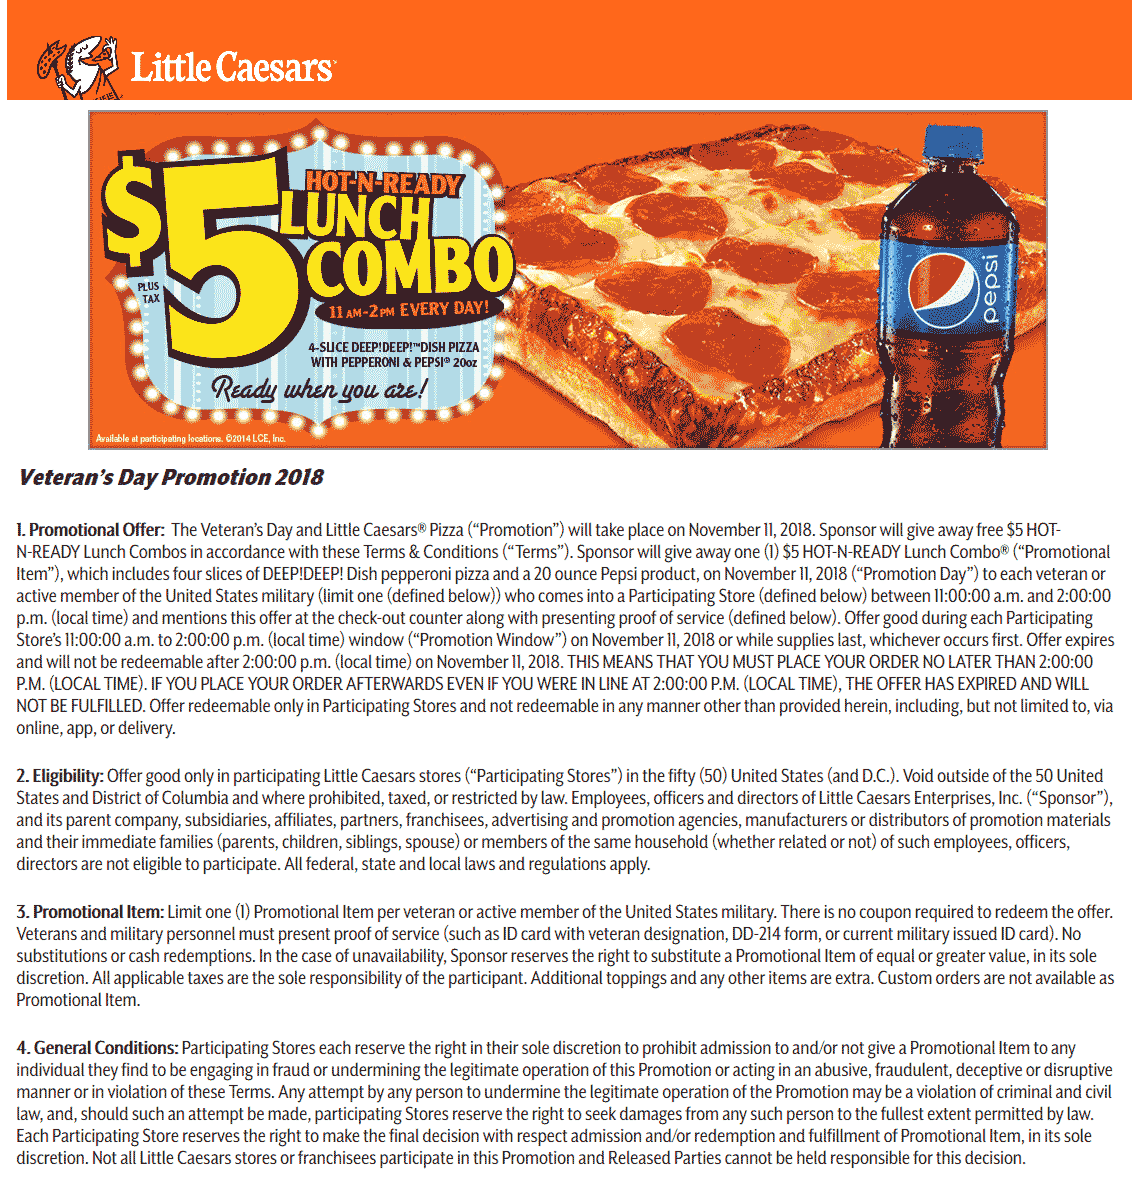 Little Caesars Coupon August 2020 Veterans enjoy a free pizza combo meal Sunday at Little Caesars